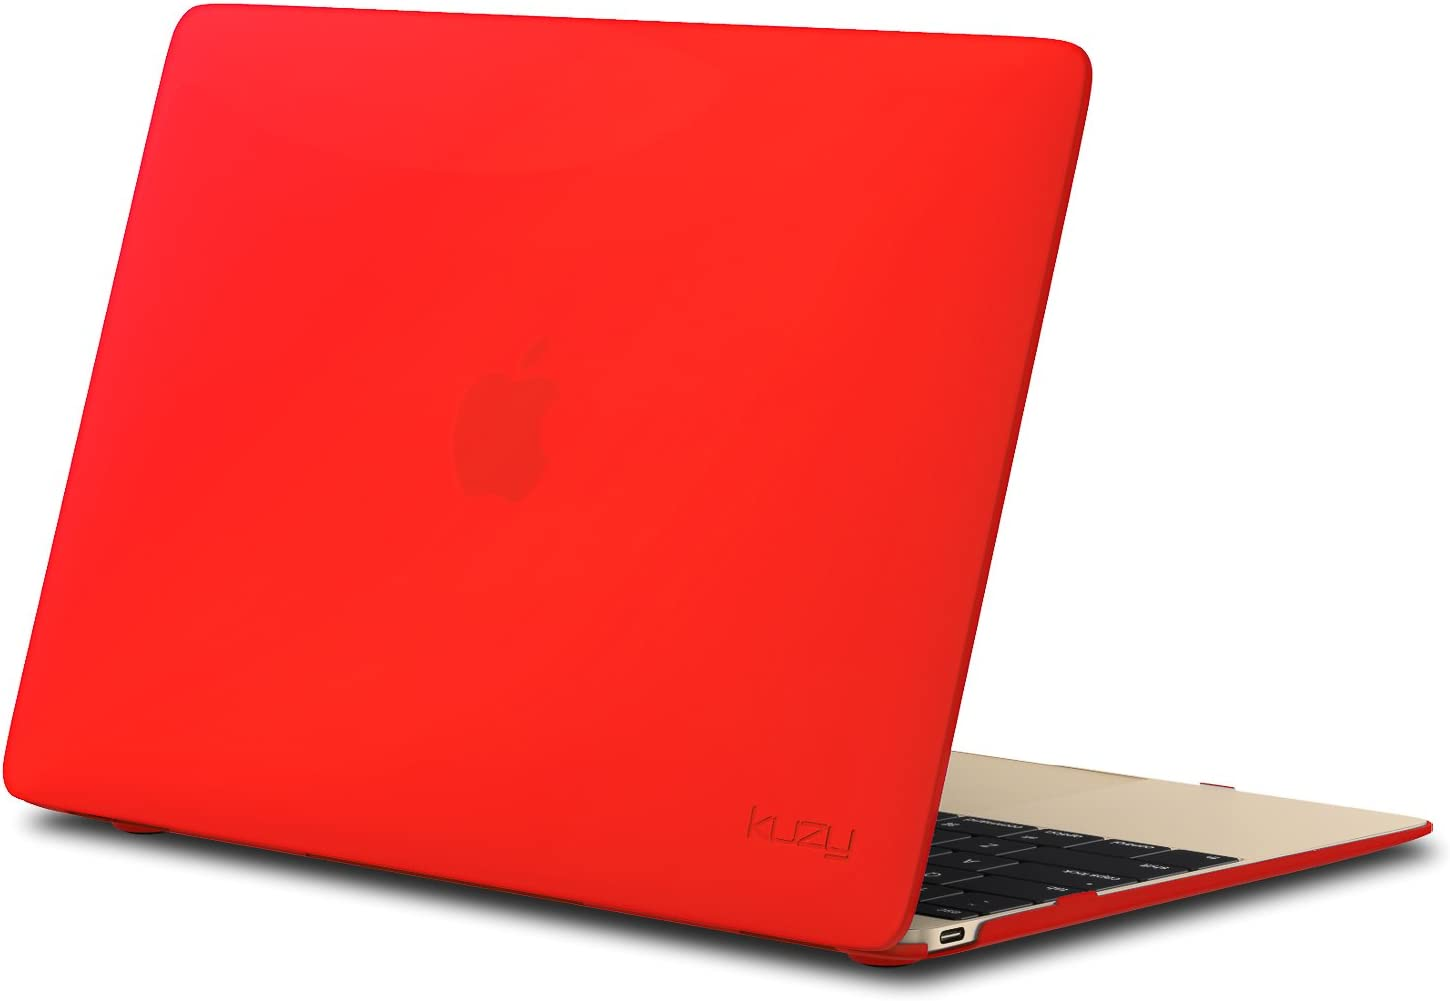 Kuzy MacBook 12 inch Case, Retina Display Model A1534 New 2018 2017 2016 2015 Soft Touch Hard Case Shell Cover - Red